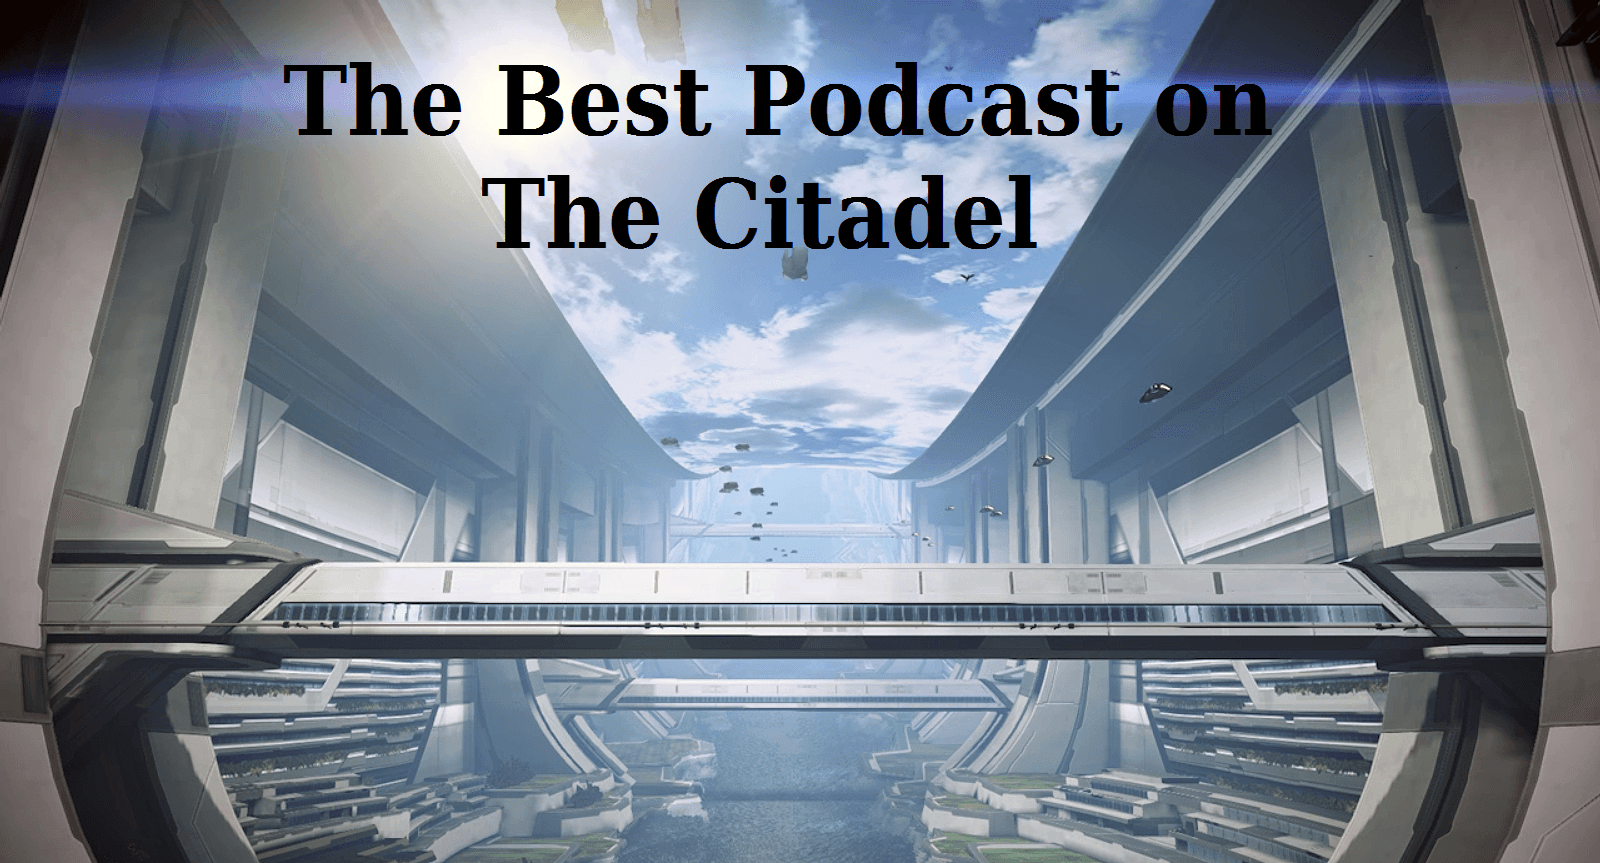 The Best Podcast on the Citadel, Episode 22